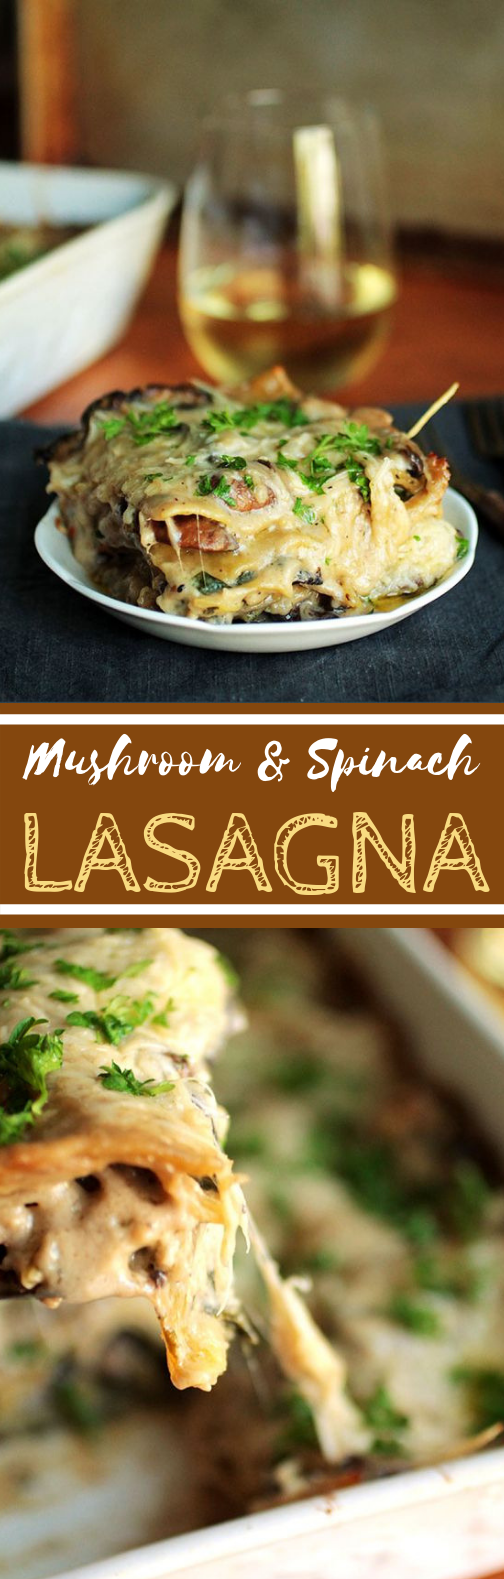 Mushroom and Spinach Lasagna #dinner #vegetarian